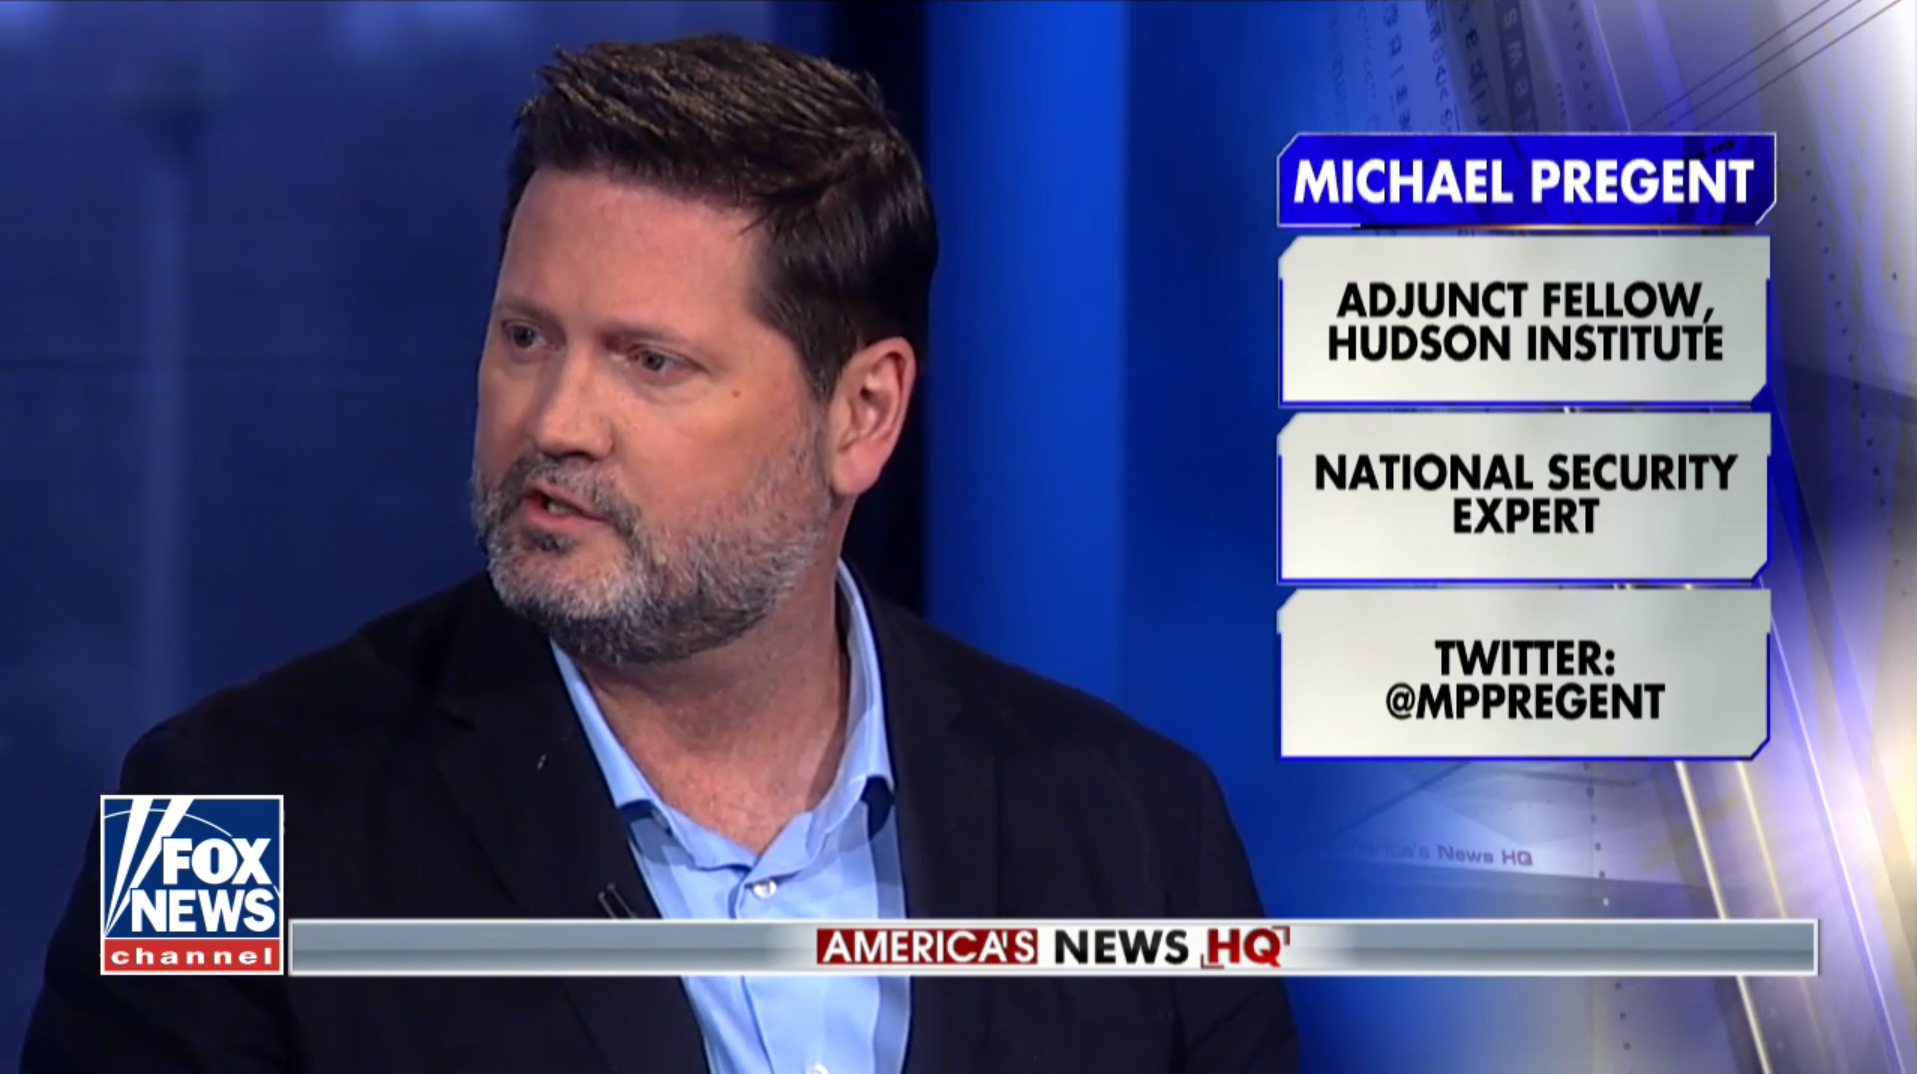 Michael Pregent on Fox News, February 17, 2018